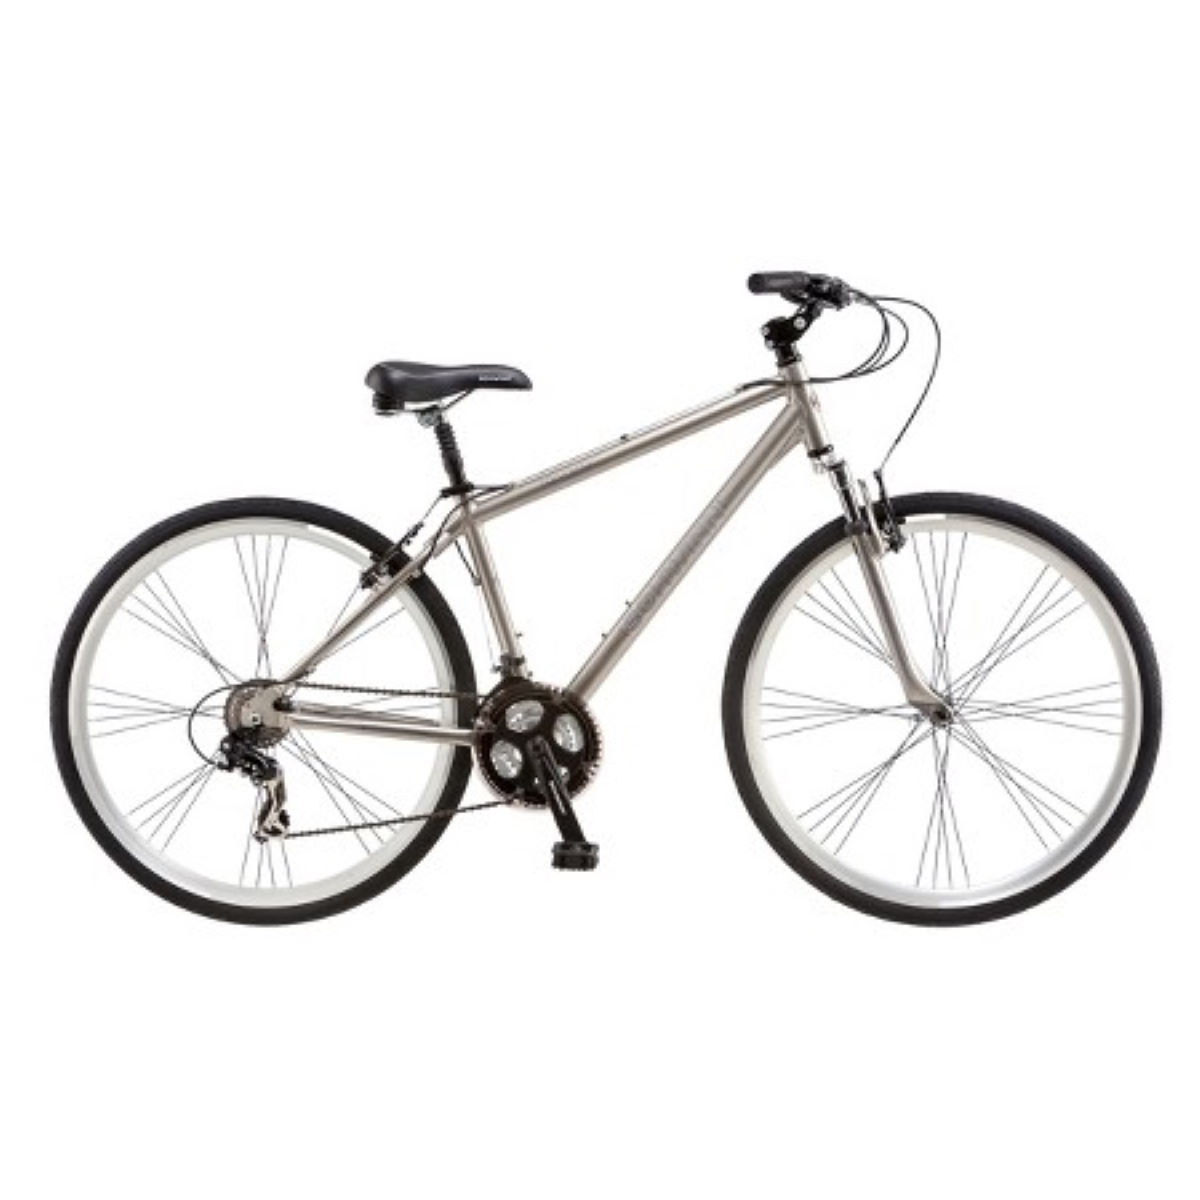 Buy Cheap Schwinn Compare Cycling Prices For Best Uk Deals